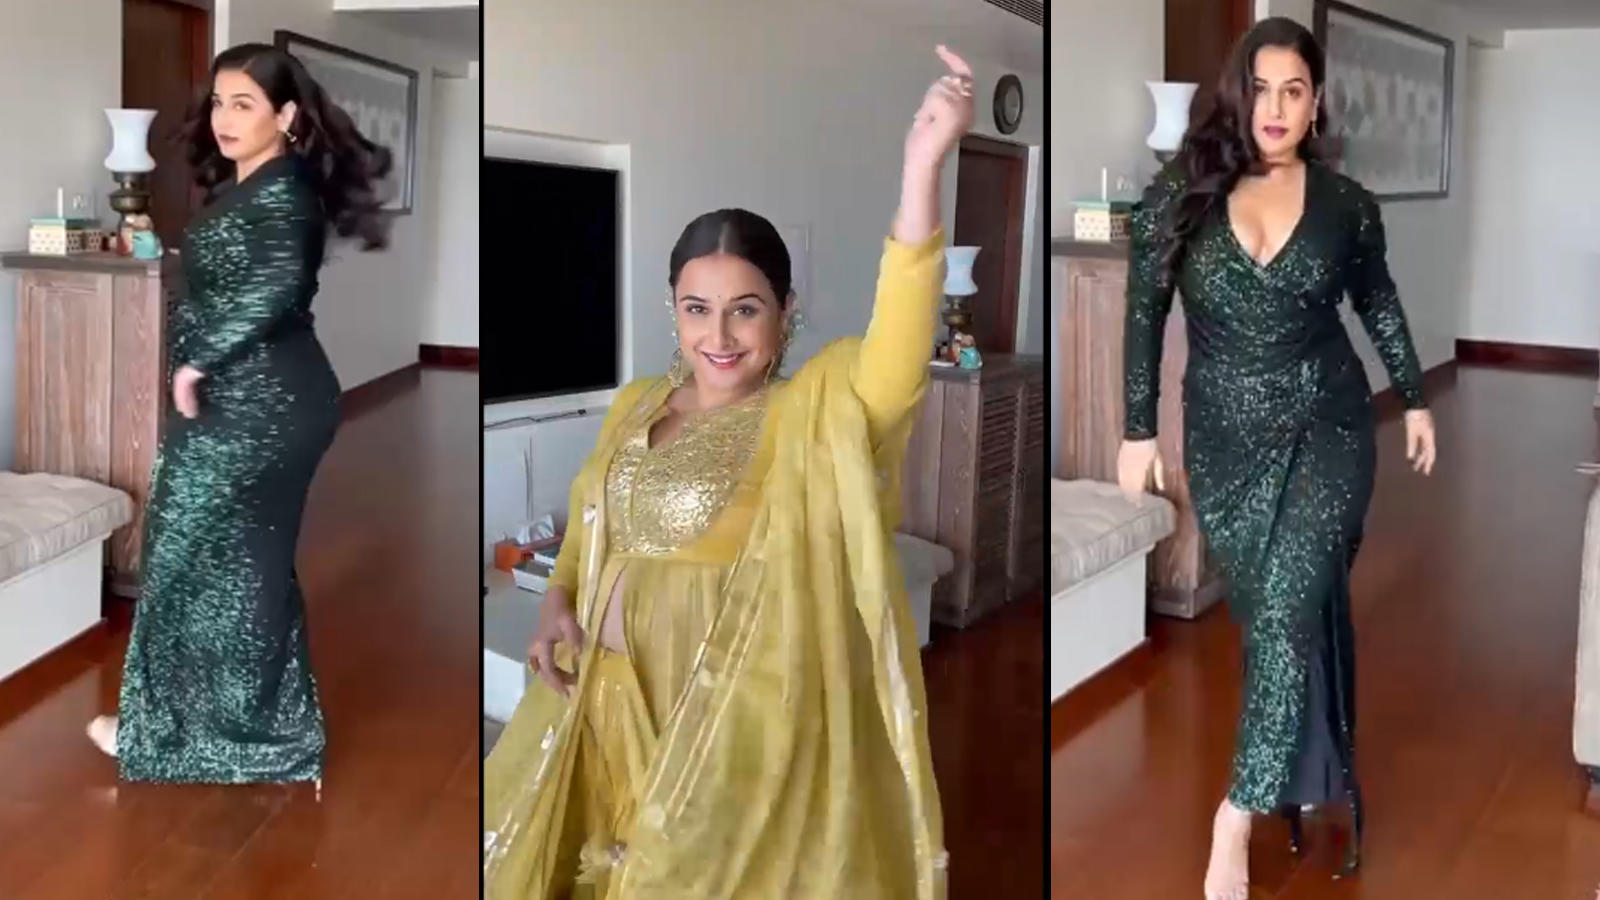 Vidya Balan hits back at trolls who called her out for wearing only Indian clothes, posts a savage video | Hindi Movie News – Bollywood – Times of India